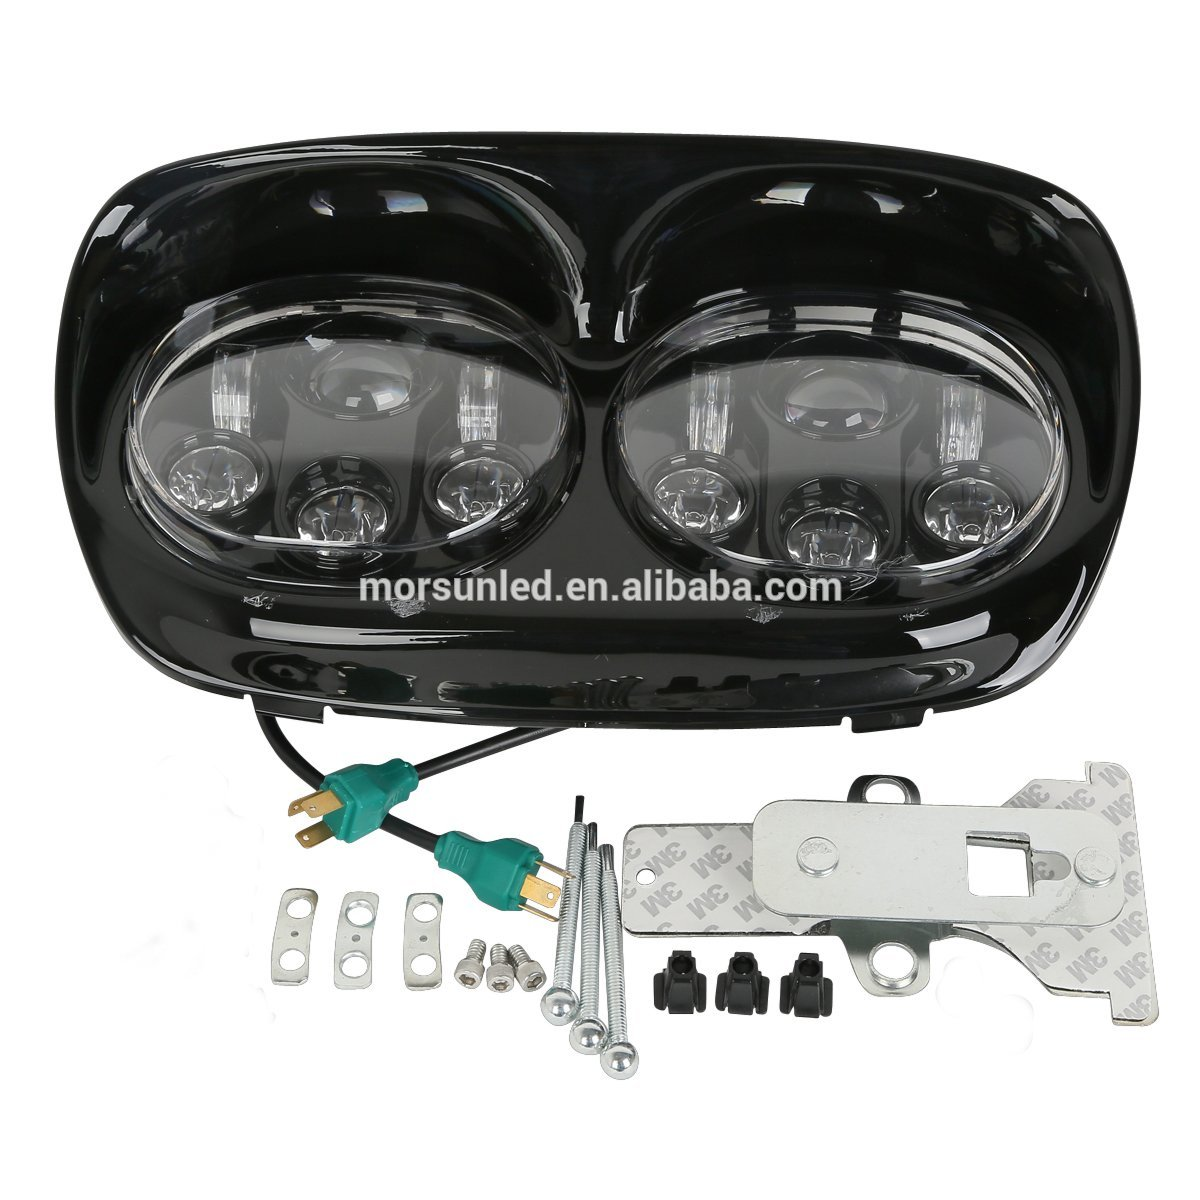 2019 auto light 5.75 inch double led headlight for motorcycle 5 3/4 led headlamp